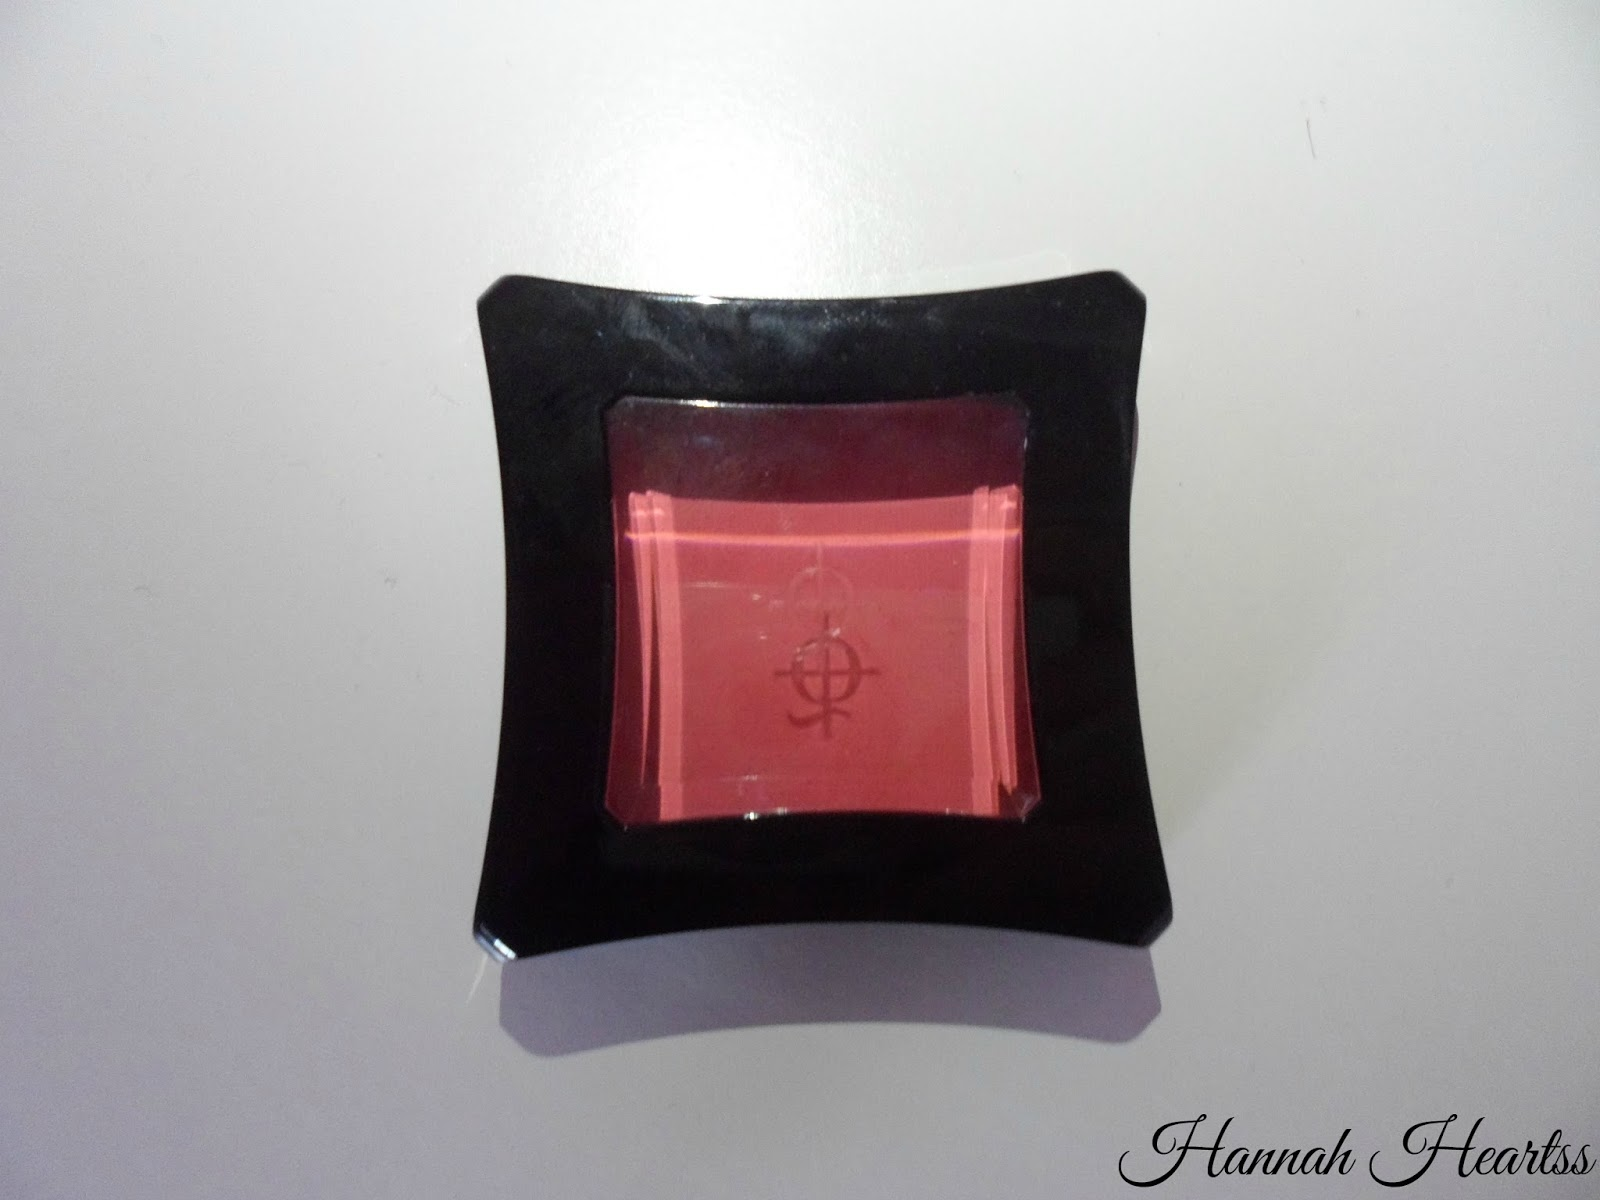 Illamasqua Powder Blush in Hussy